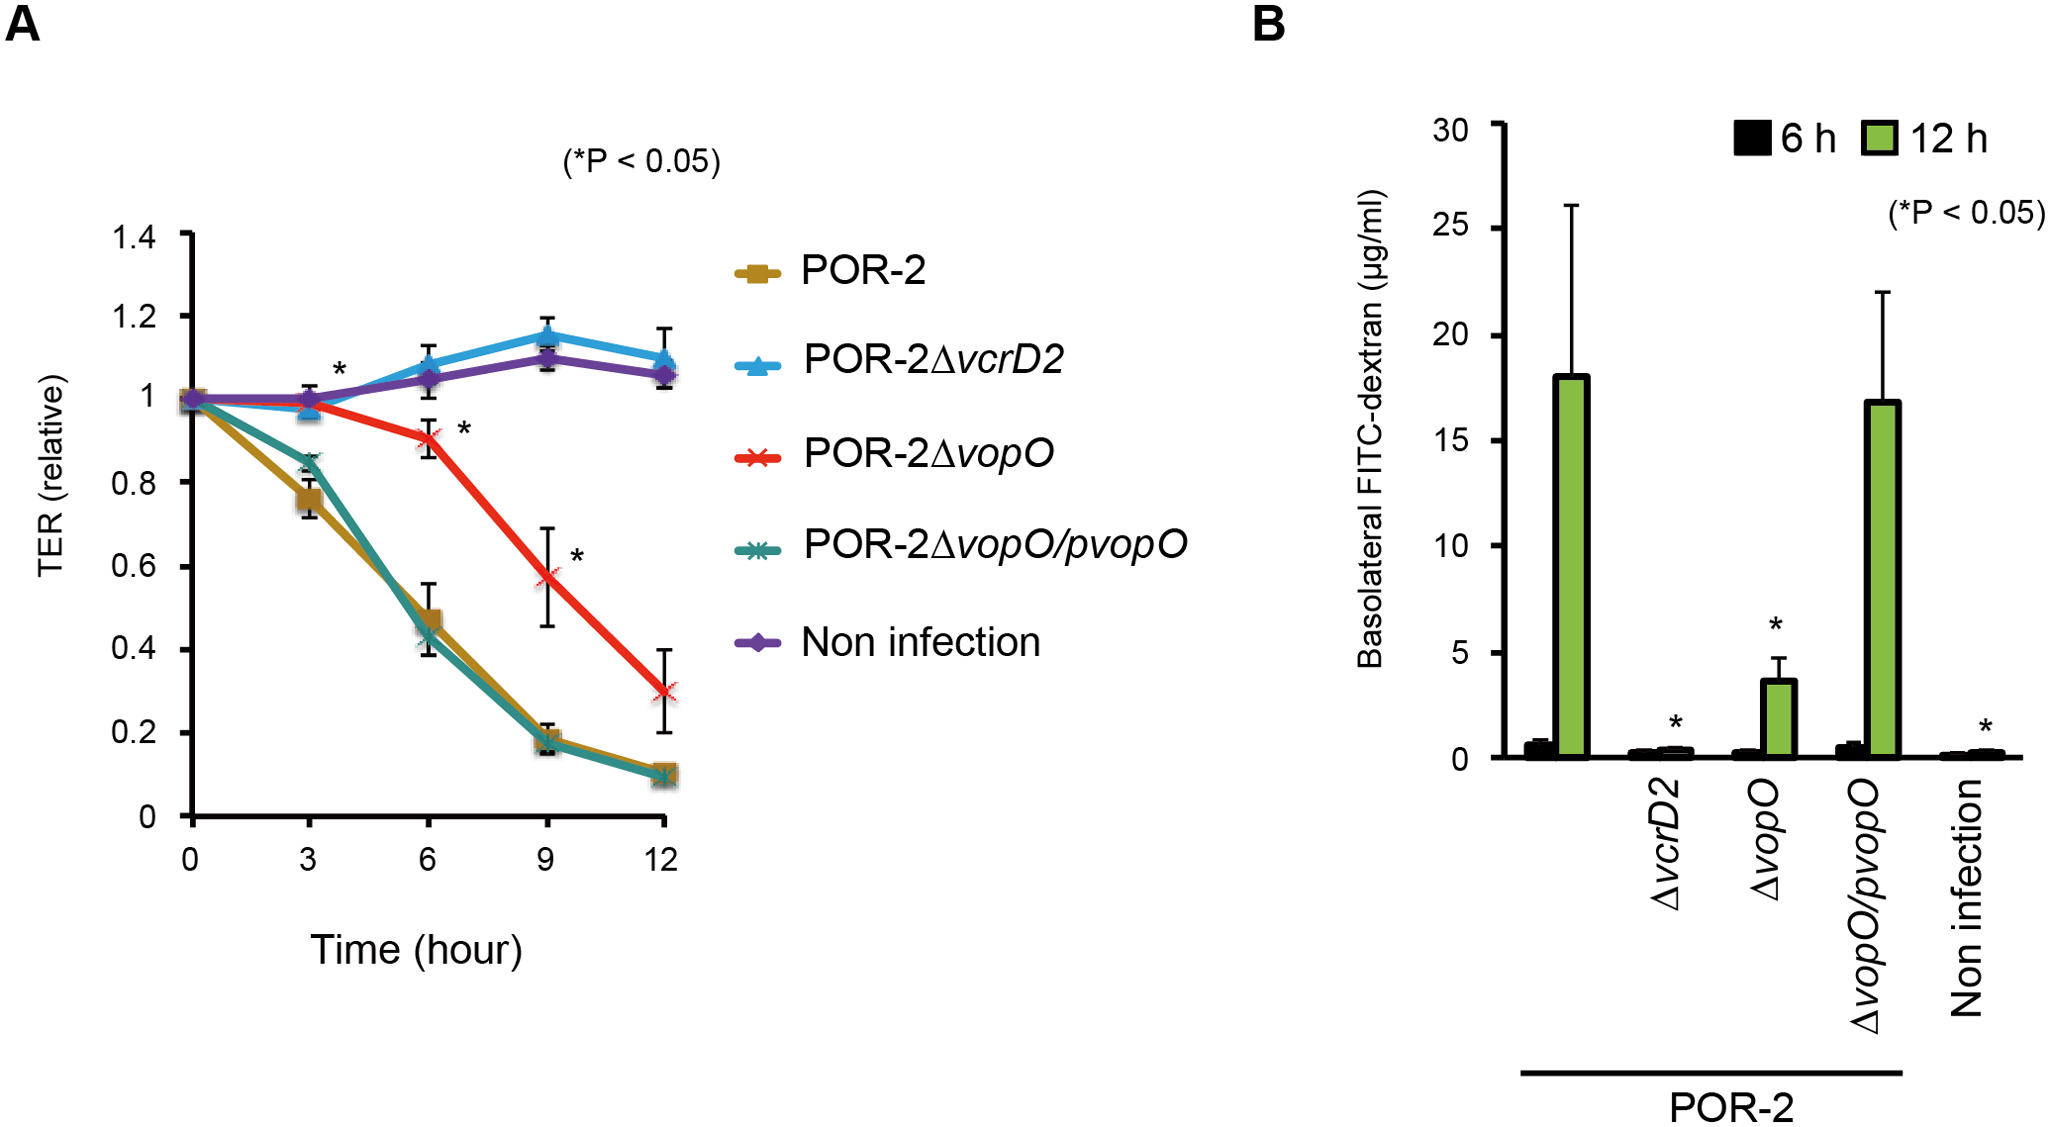 VopO disrupts the epithelial barrier.